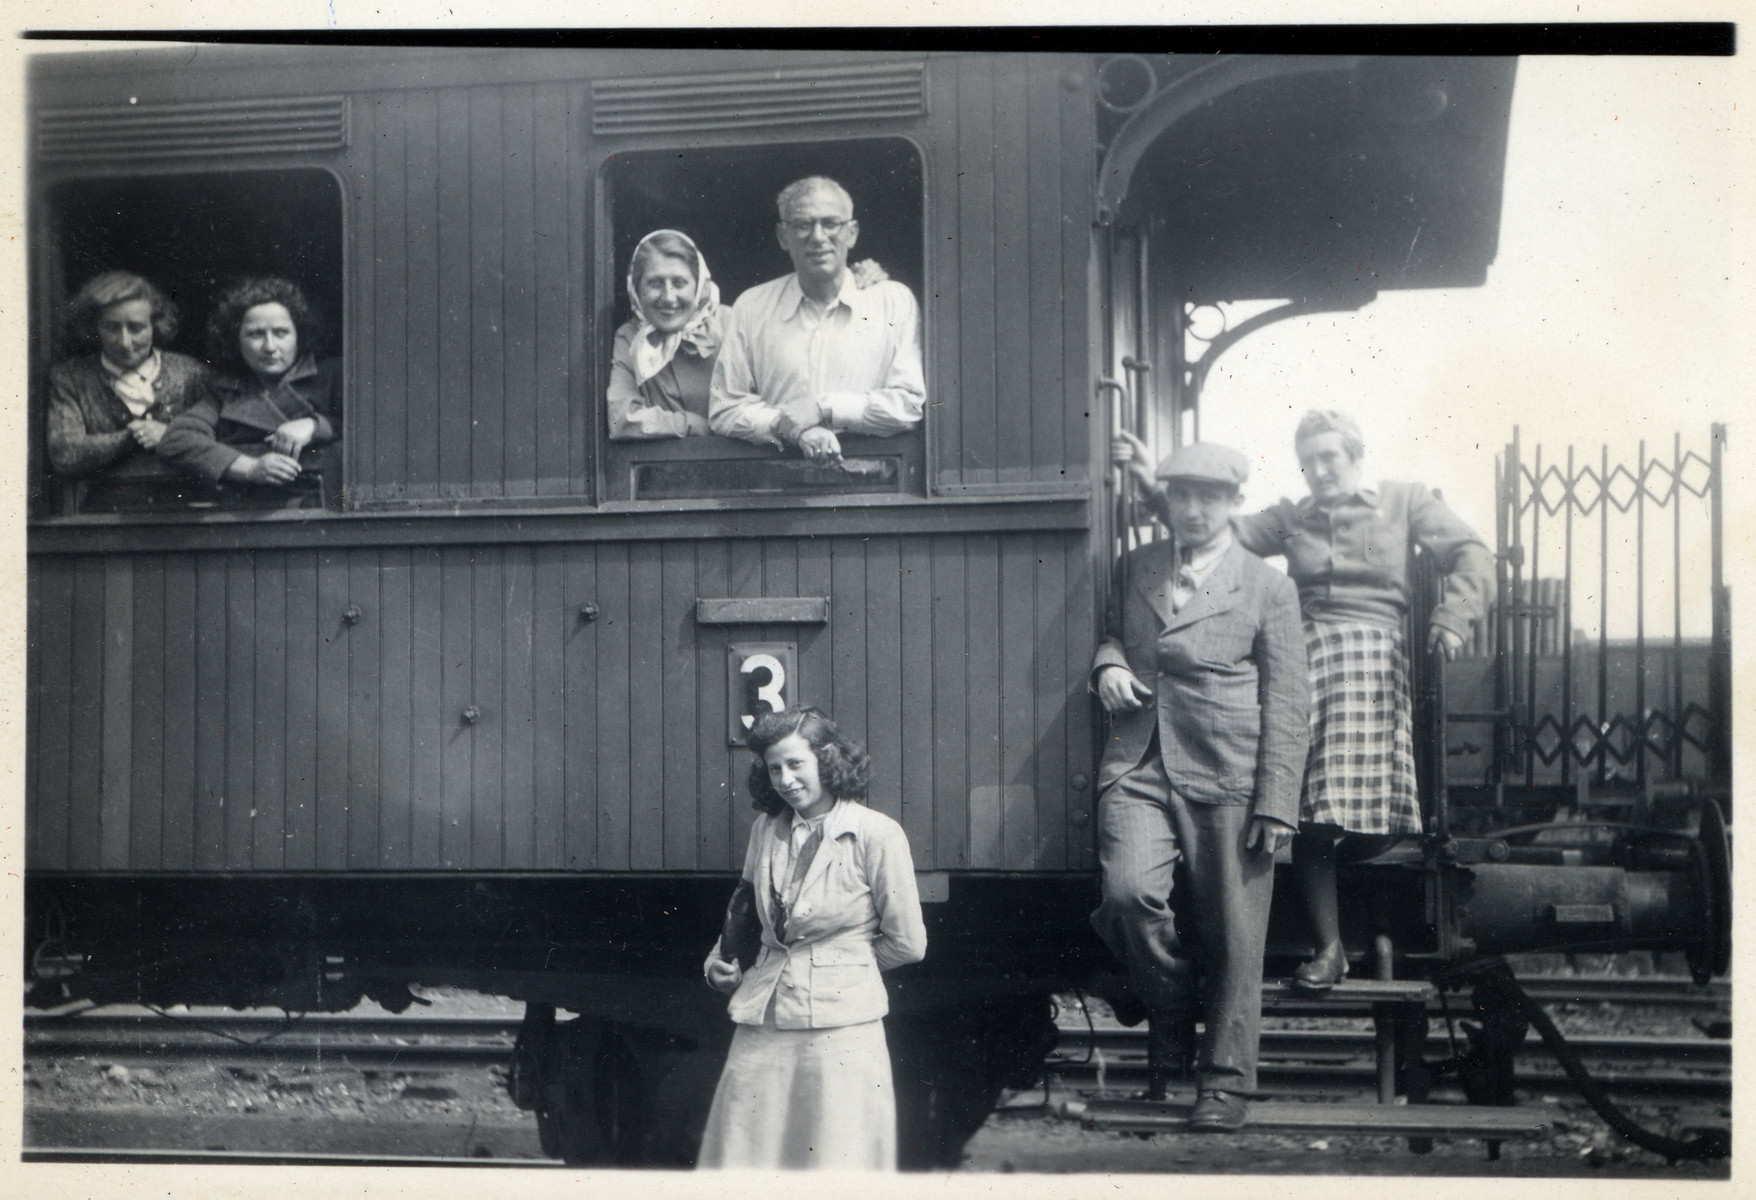 A German Jewish couple looks out the window of a train [perhaps in advance of their departure to the United States on board the Marine Perch.]  Pictured are Fritz and Jachet Sauerbrunn looking out the train window on the right.